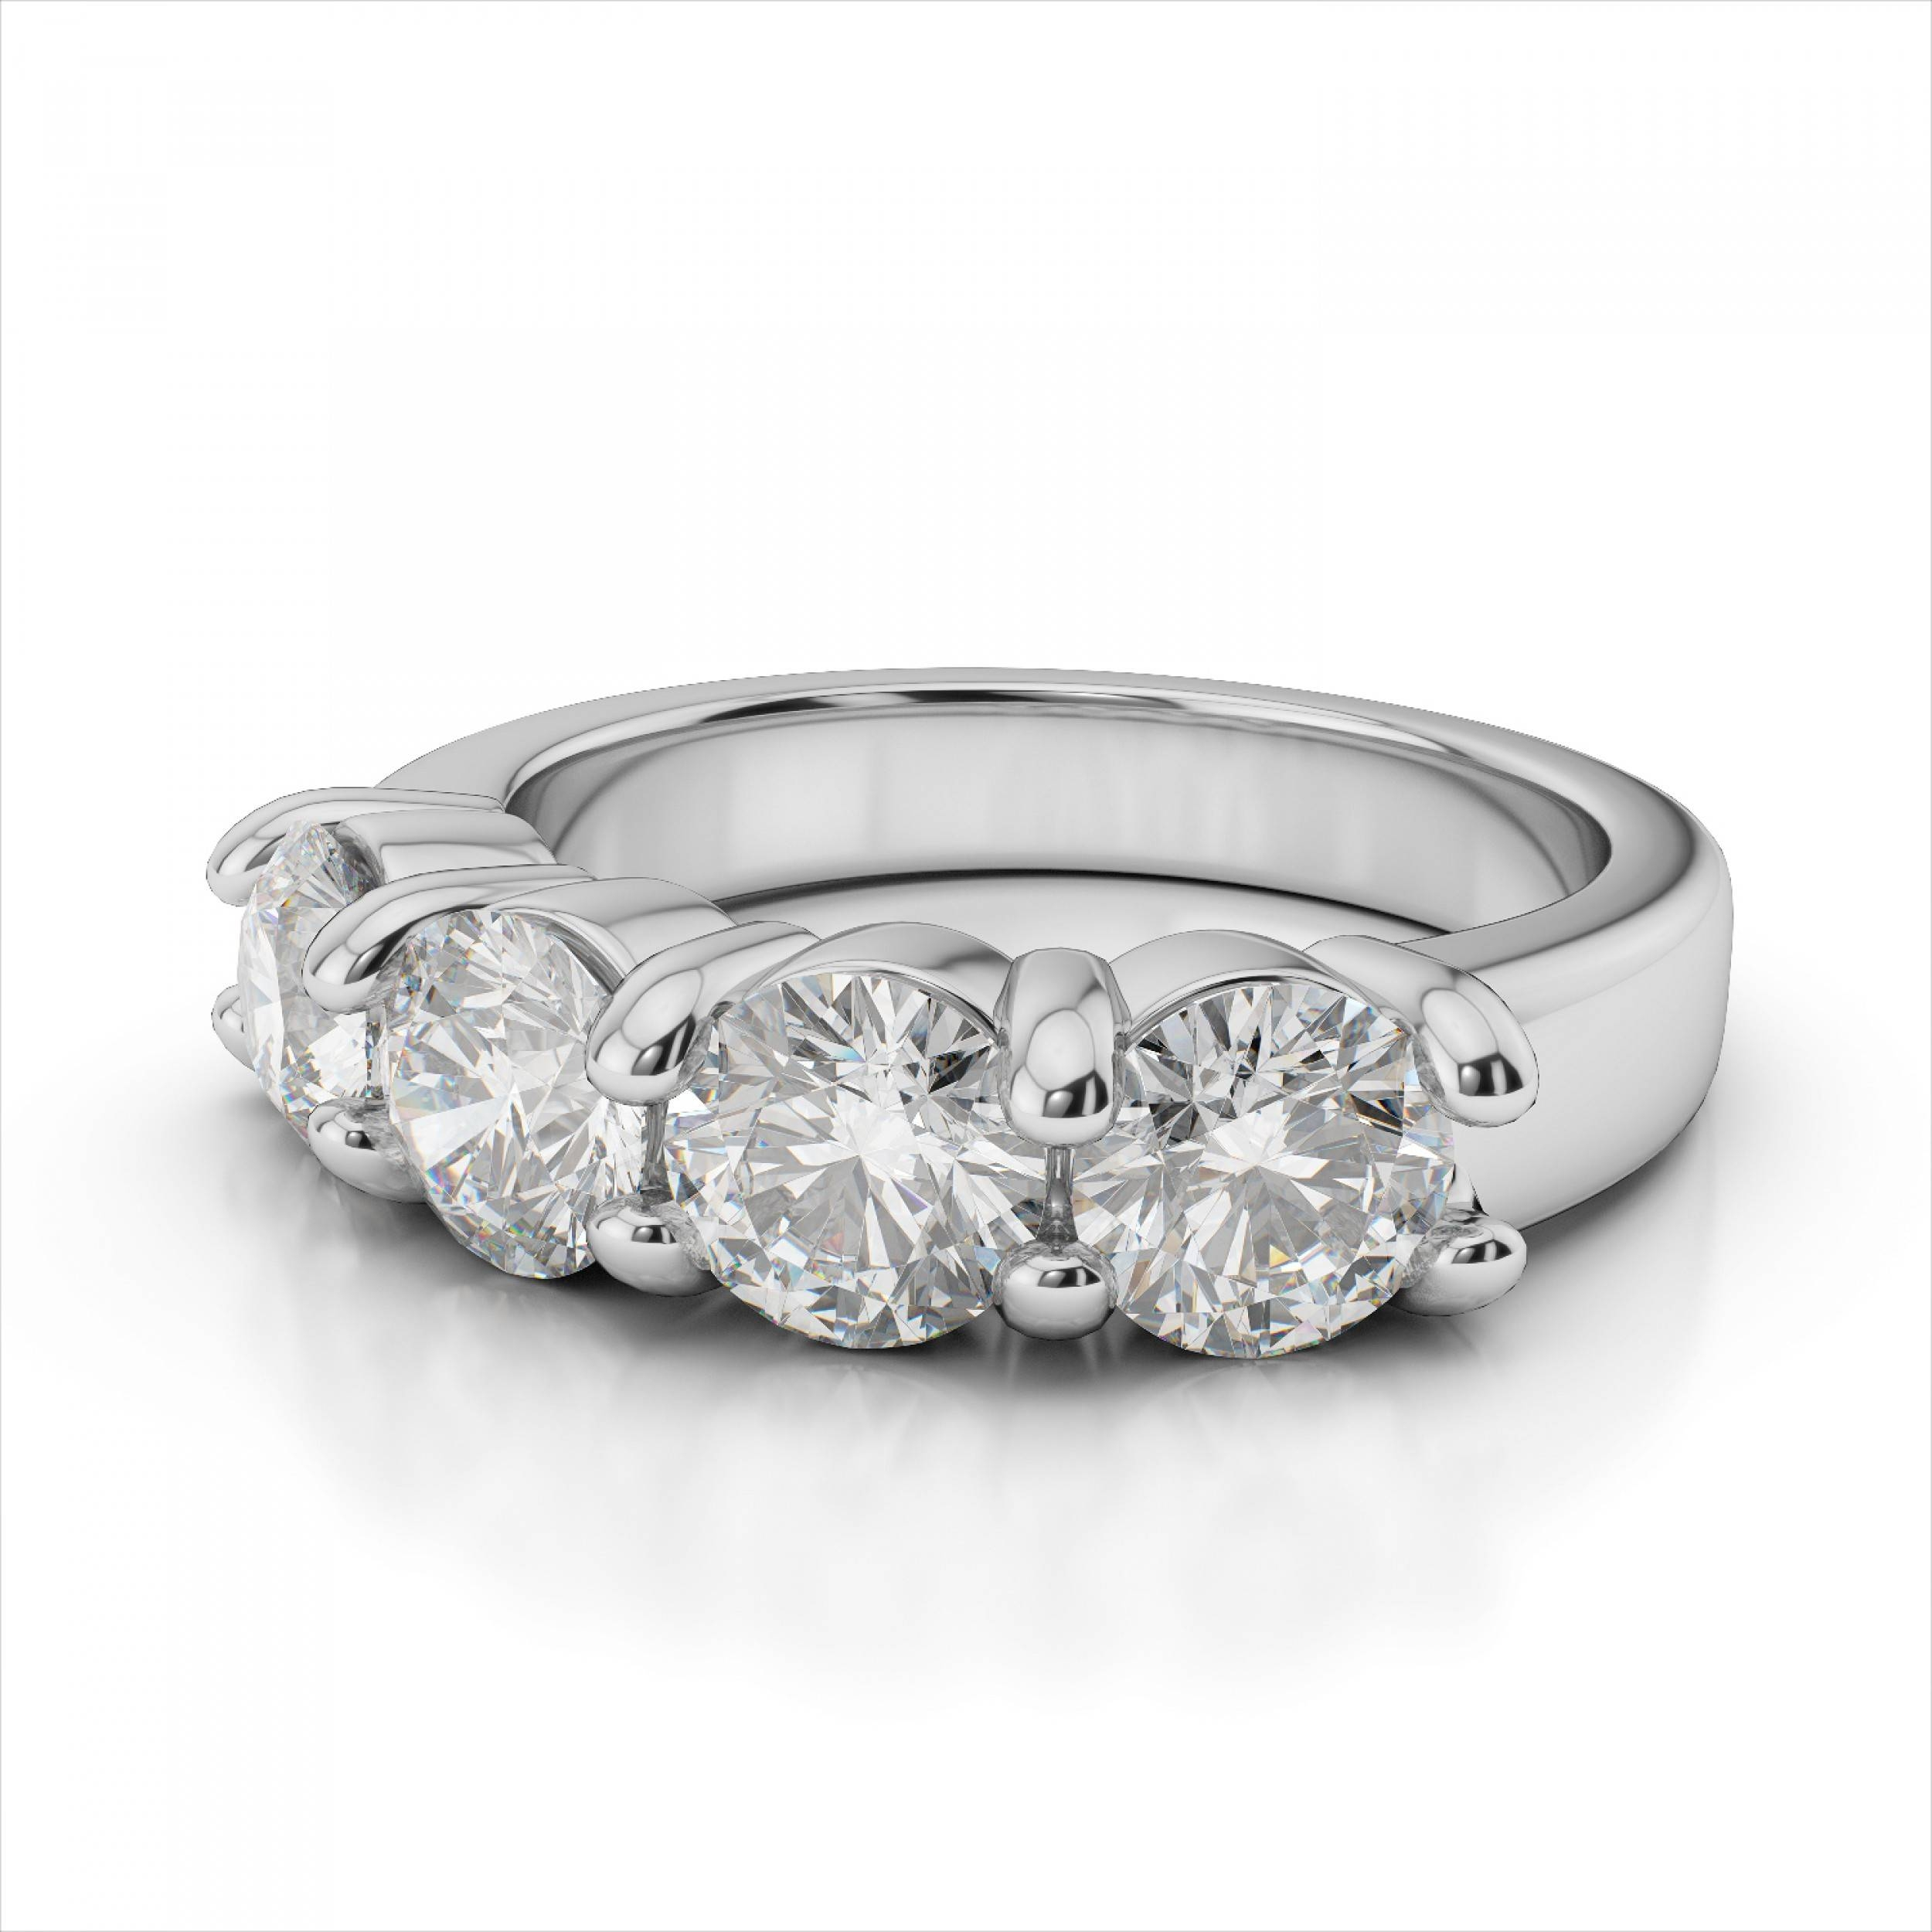 Wedding Rings : 3 Stone Anniversary Ring Estate Anniversary Rings Regarding Most Up To Date 5 Stone Diamond Anniversary Rings (View 25 of 25)